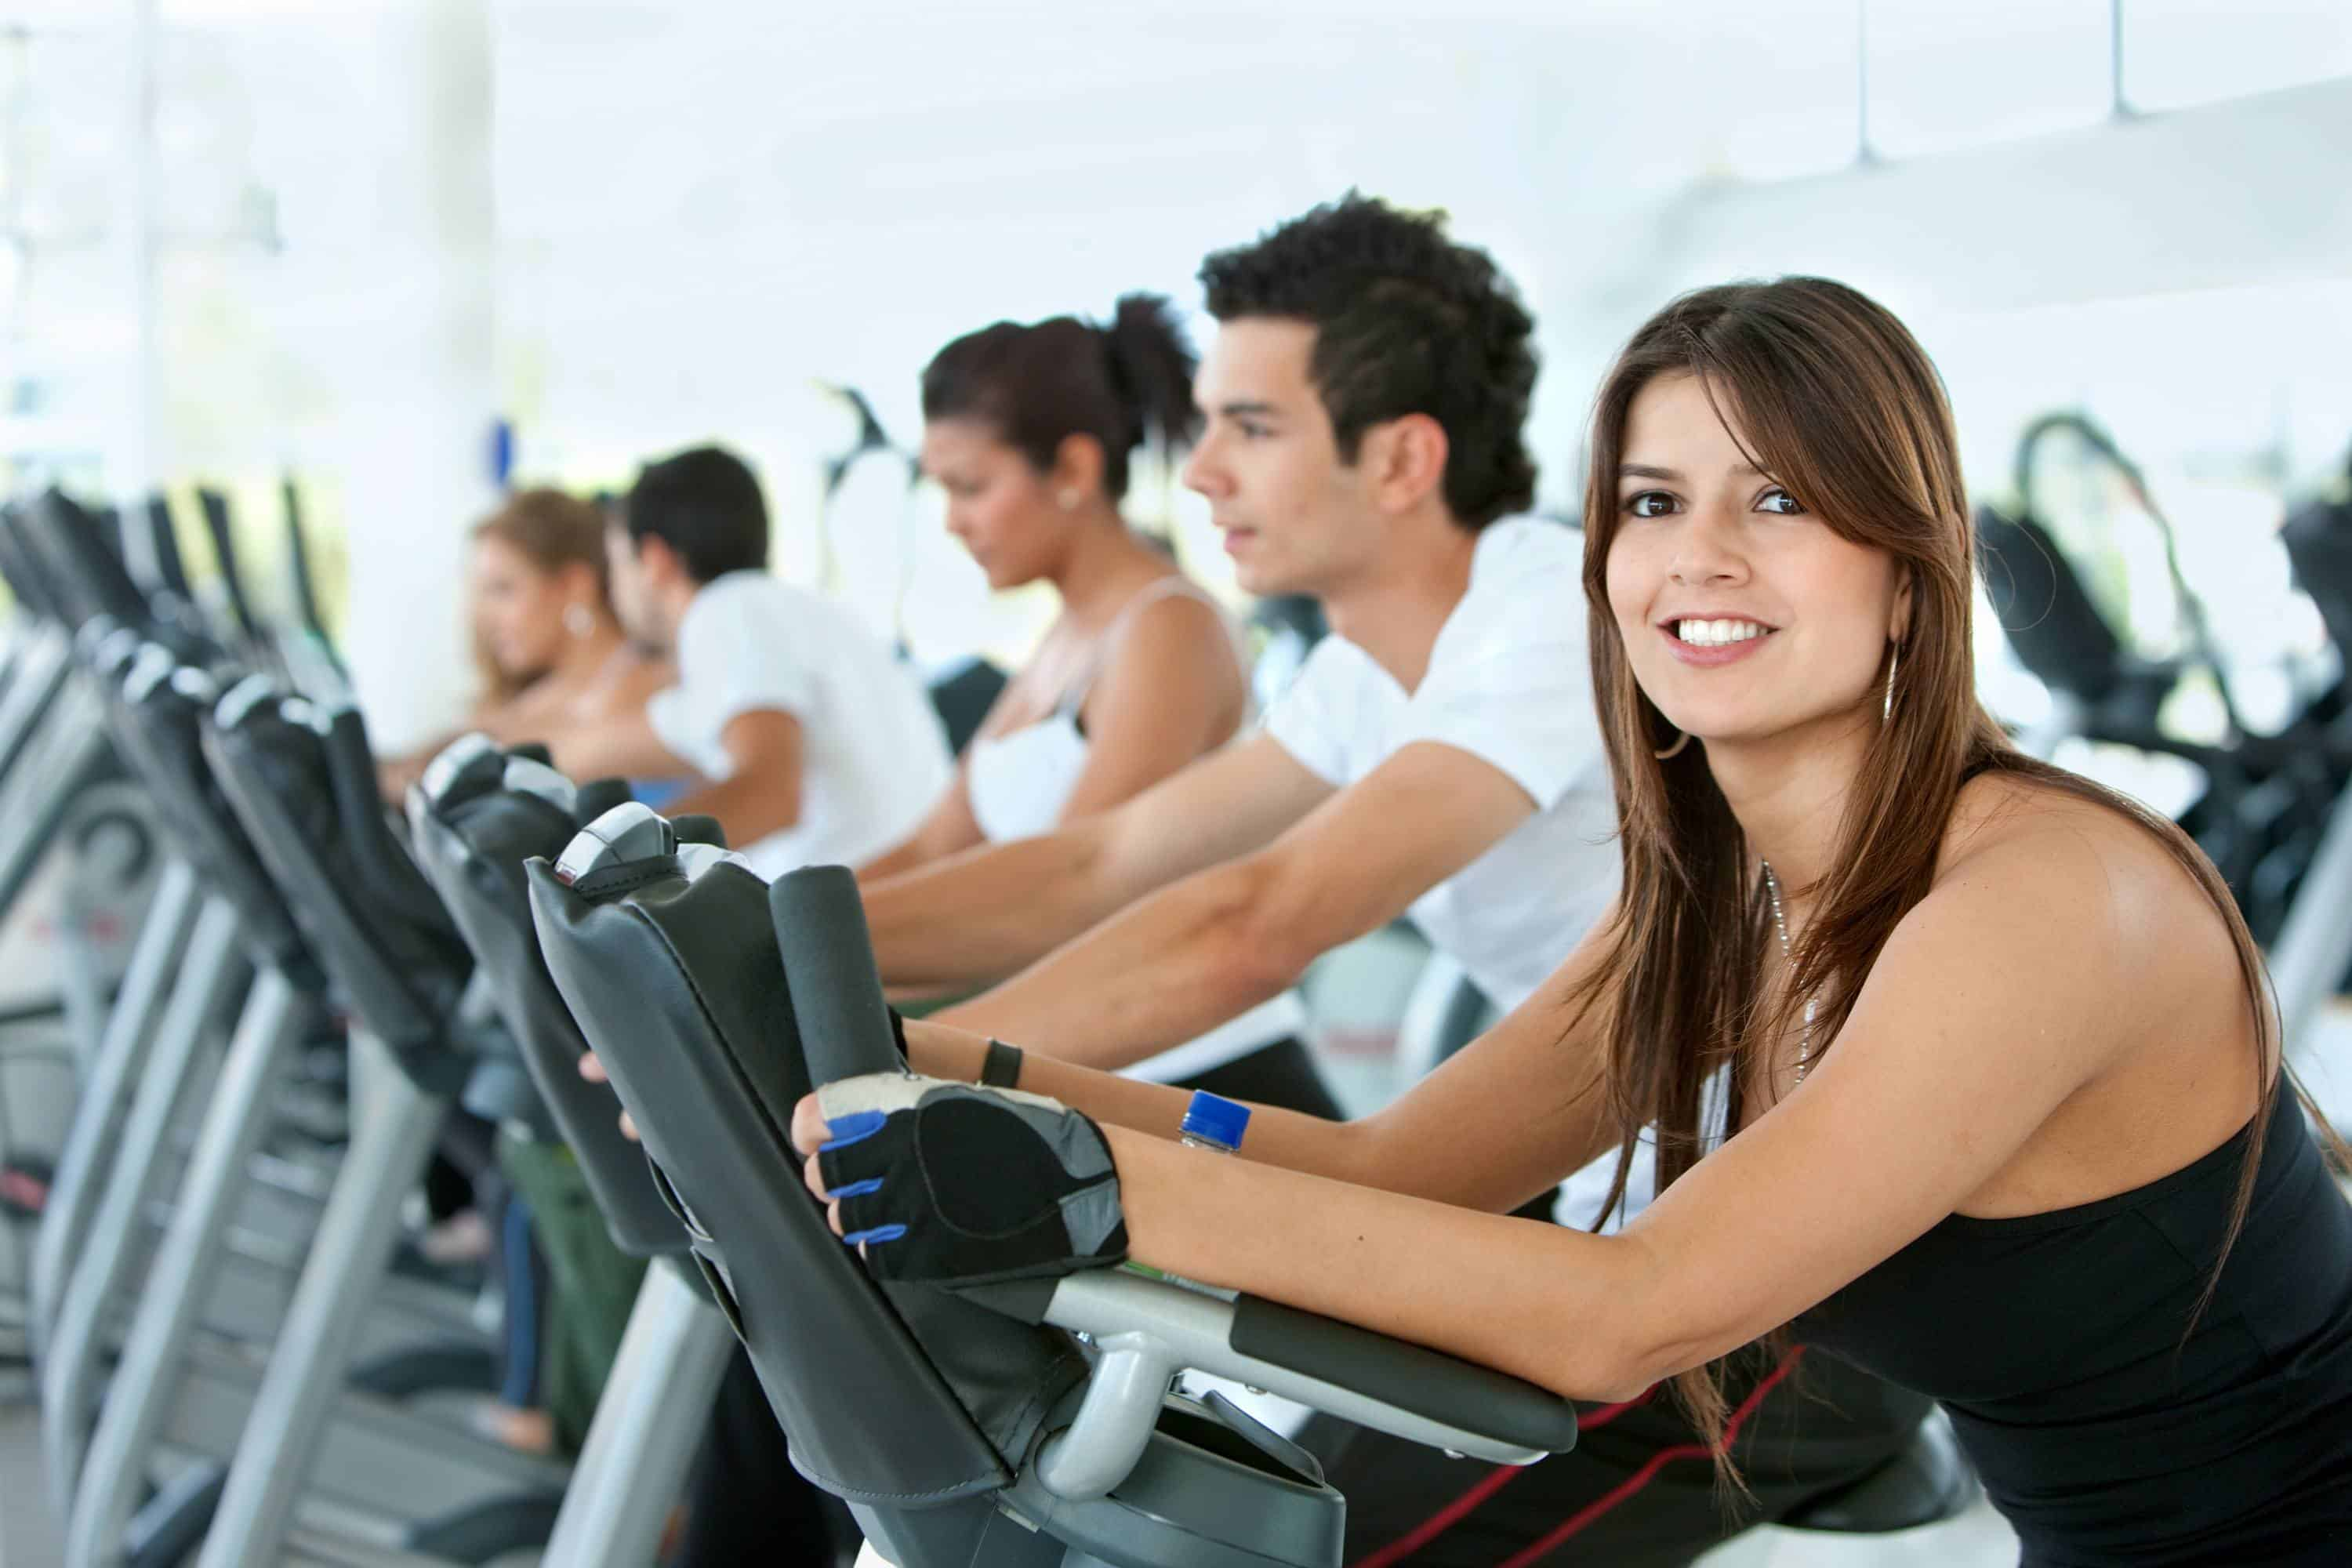 Cardio Vs Weight Training What Burns More Calories